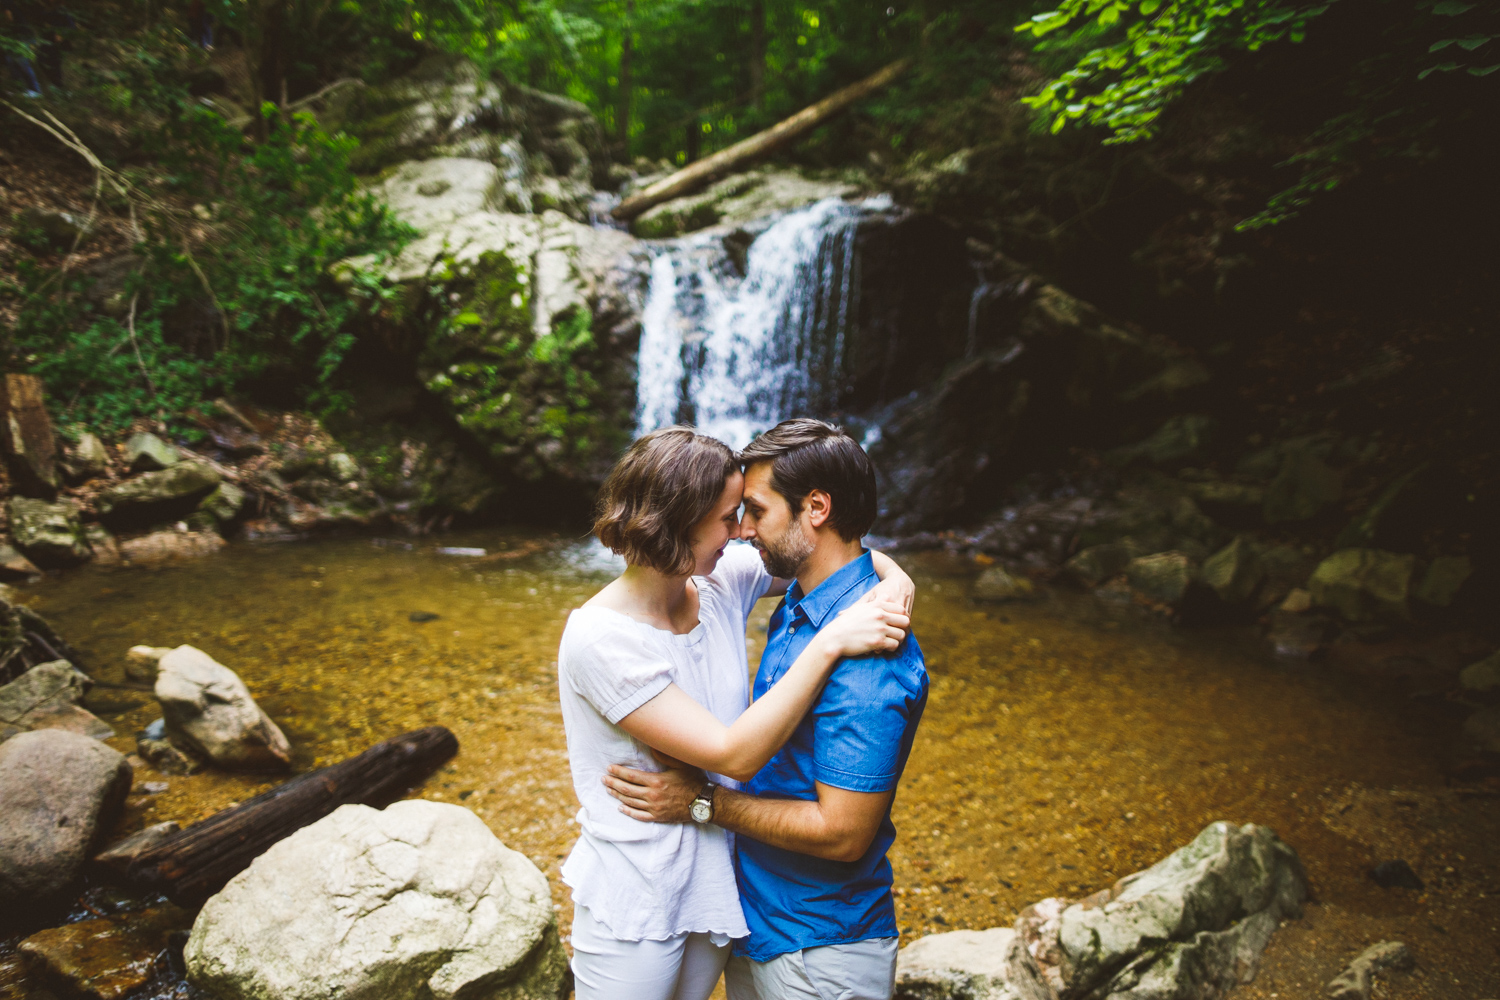 002 - cascade falls trail patapsco valley state park engagement session.jpg